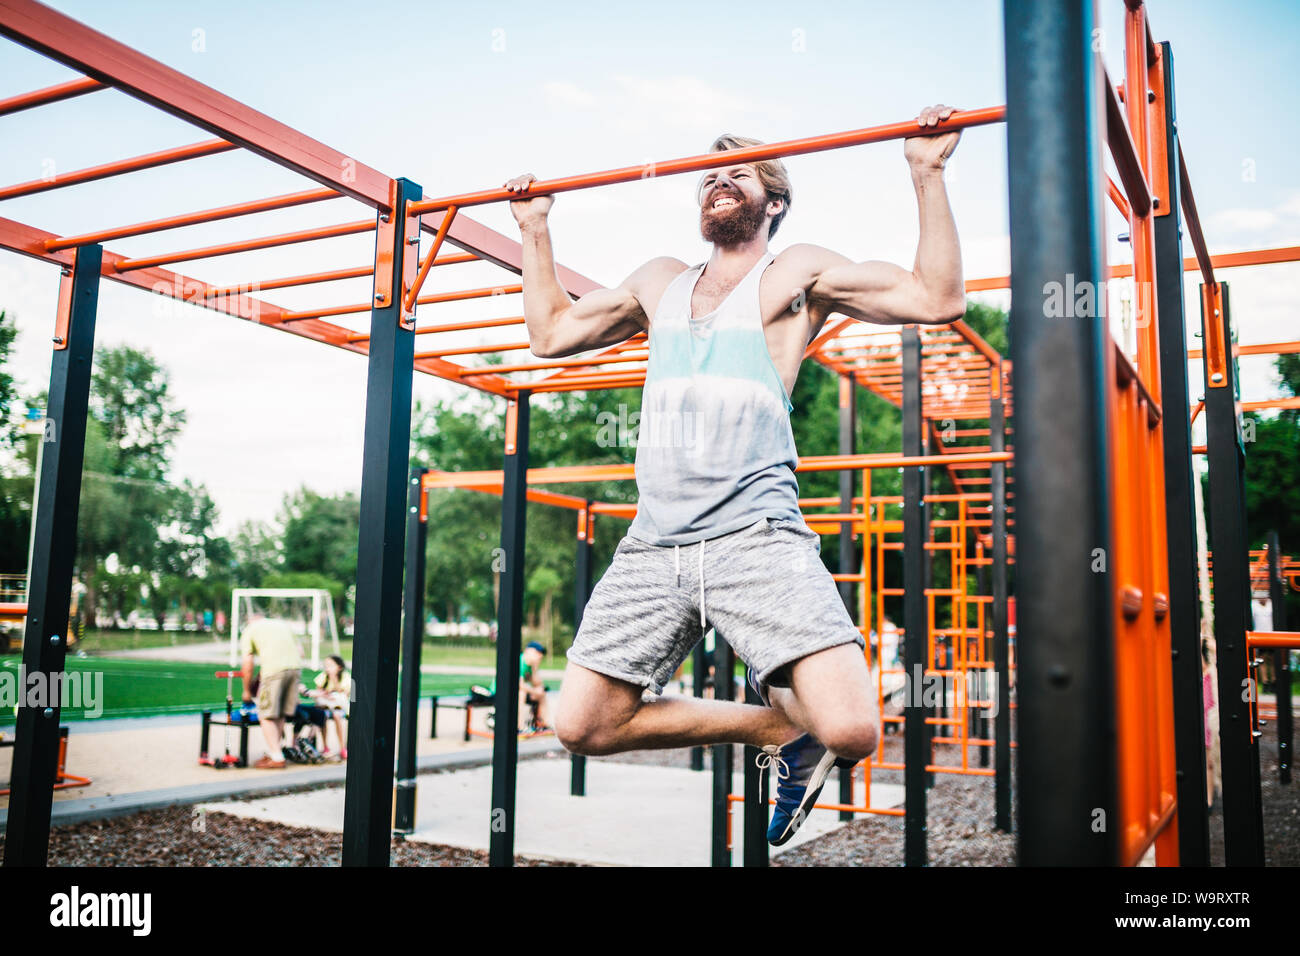 strong athlete doing pull-up on horizontal bar. Muscular man doing pull ups on horizontal bar in park. Gymnastic Bar During Workout. training strongma Stock Photo